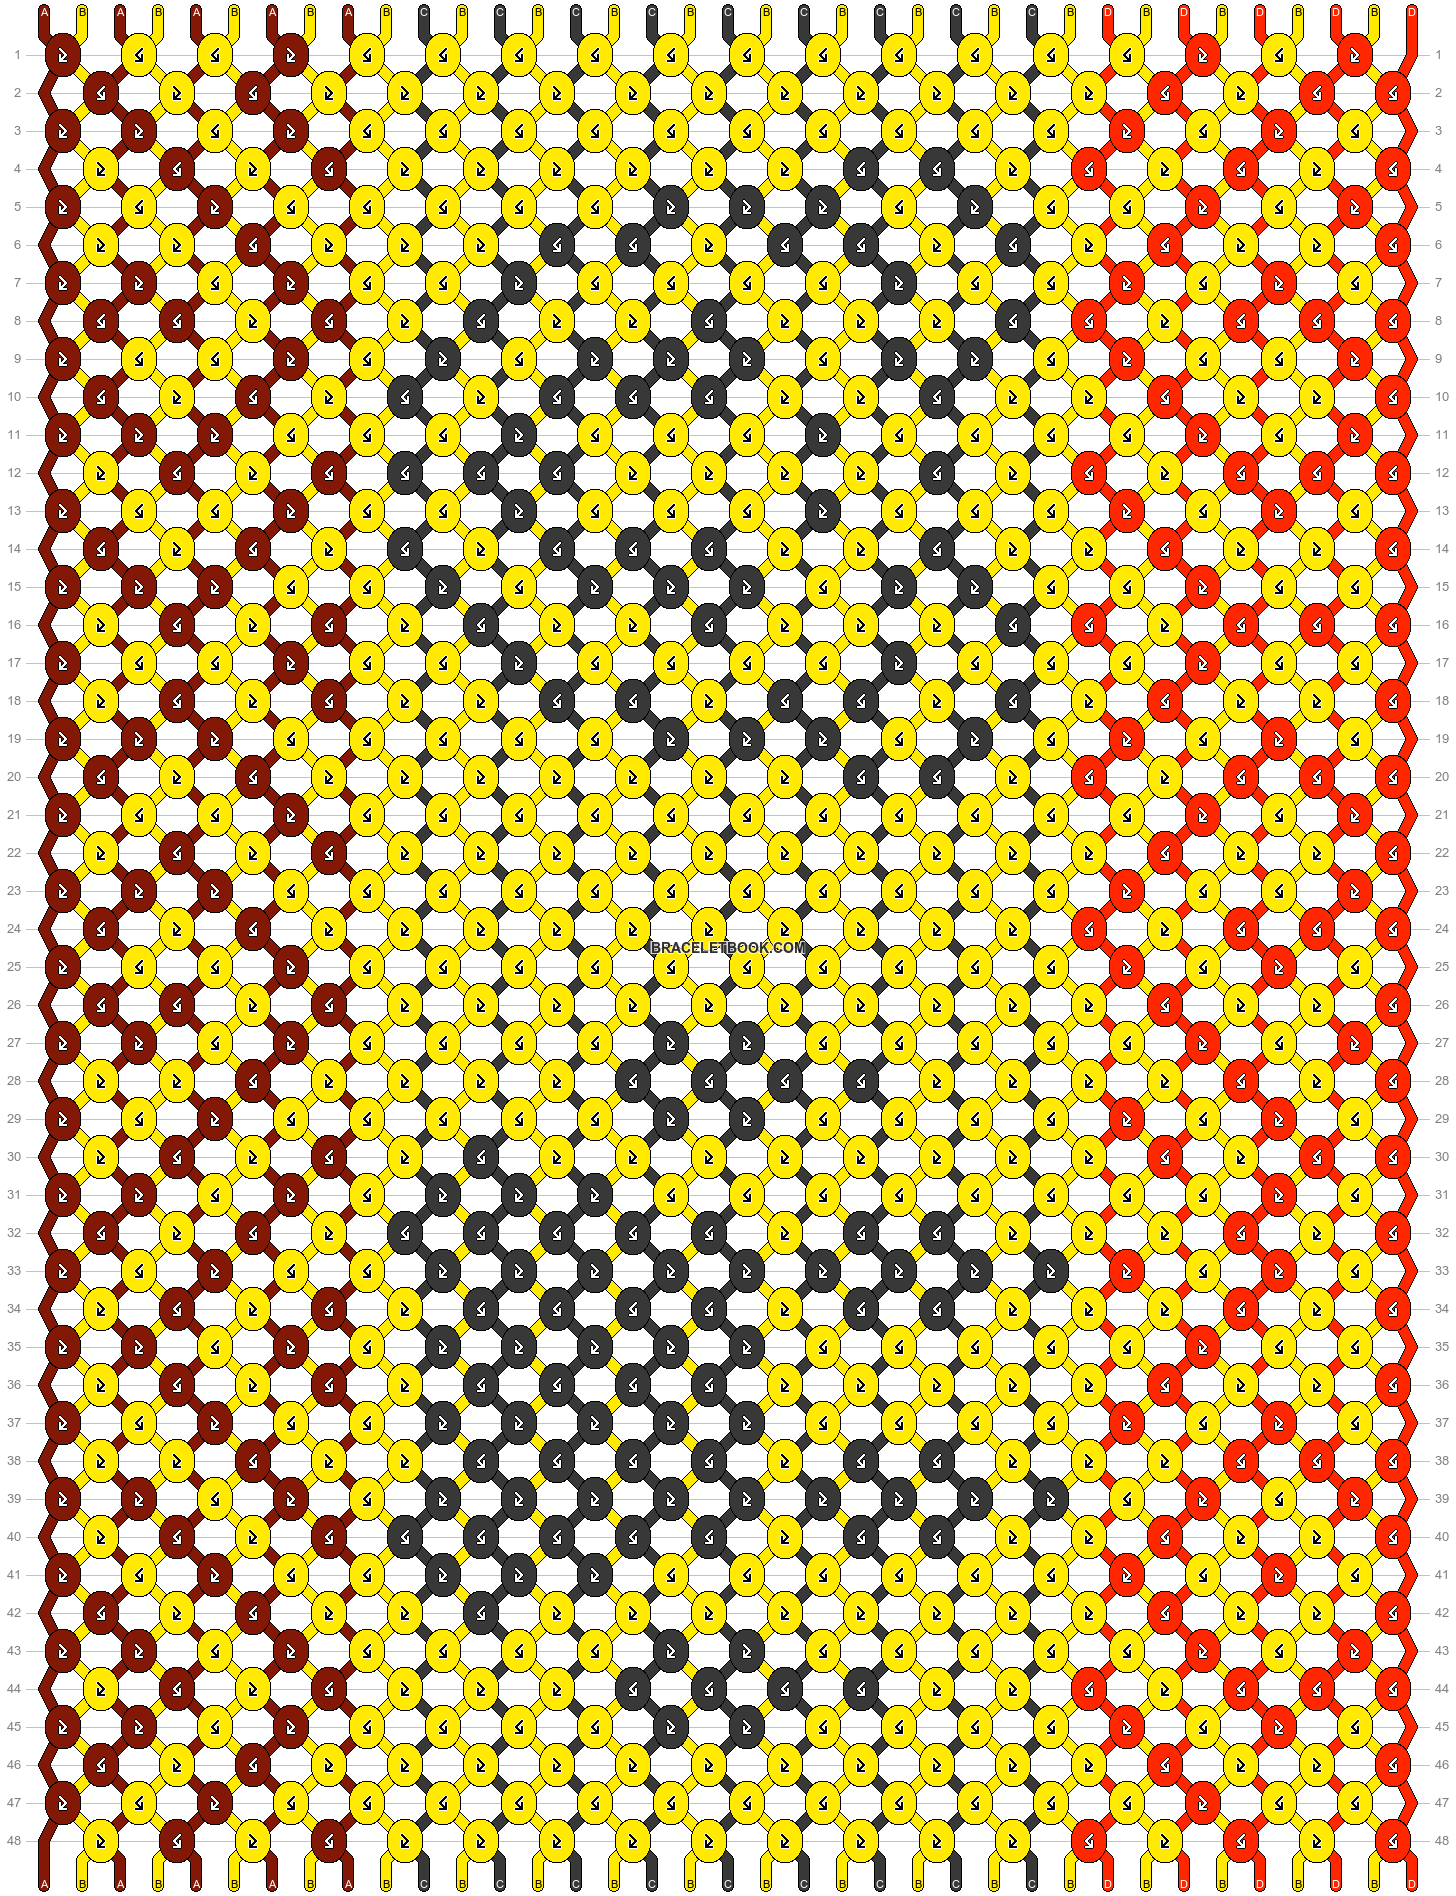 Normal Pattern #22300 added by ENCB1408